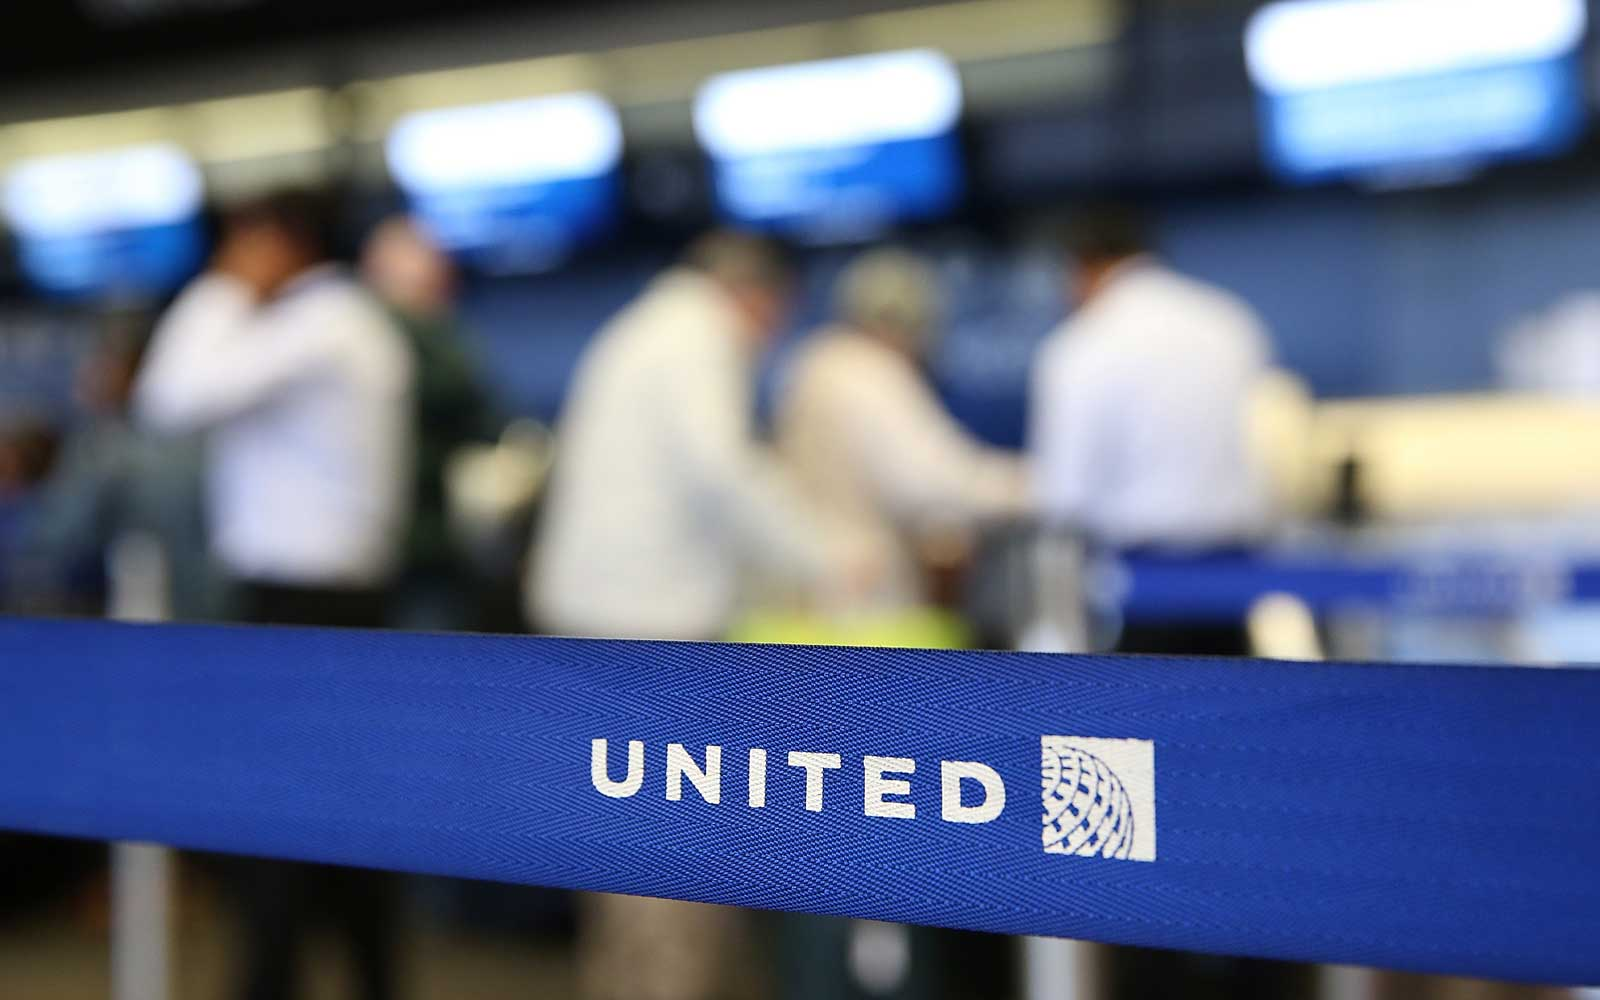 United Airlines: Officer Who Removed Passenger Put on Leave